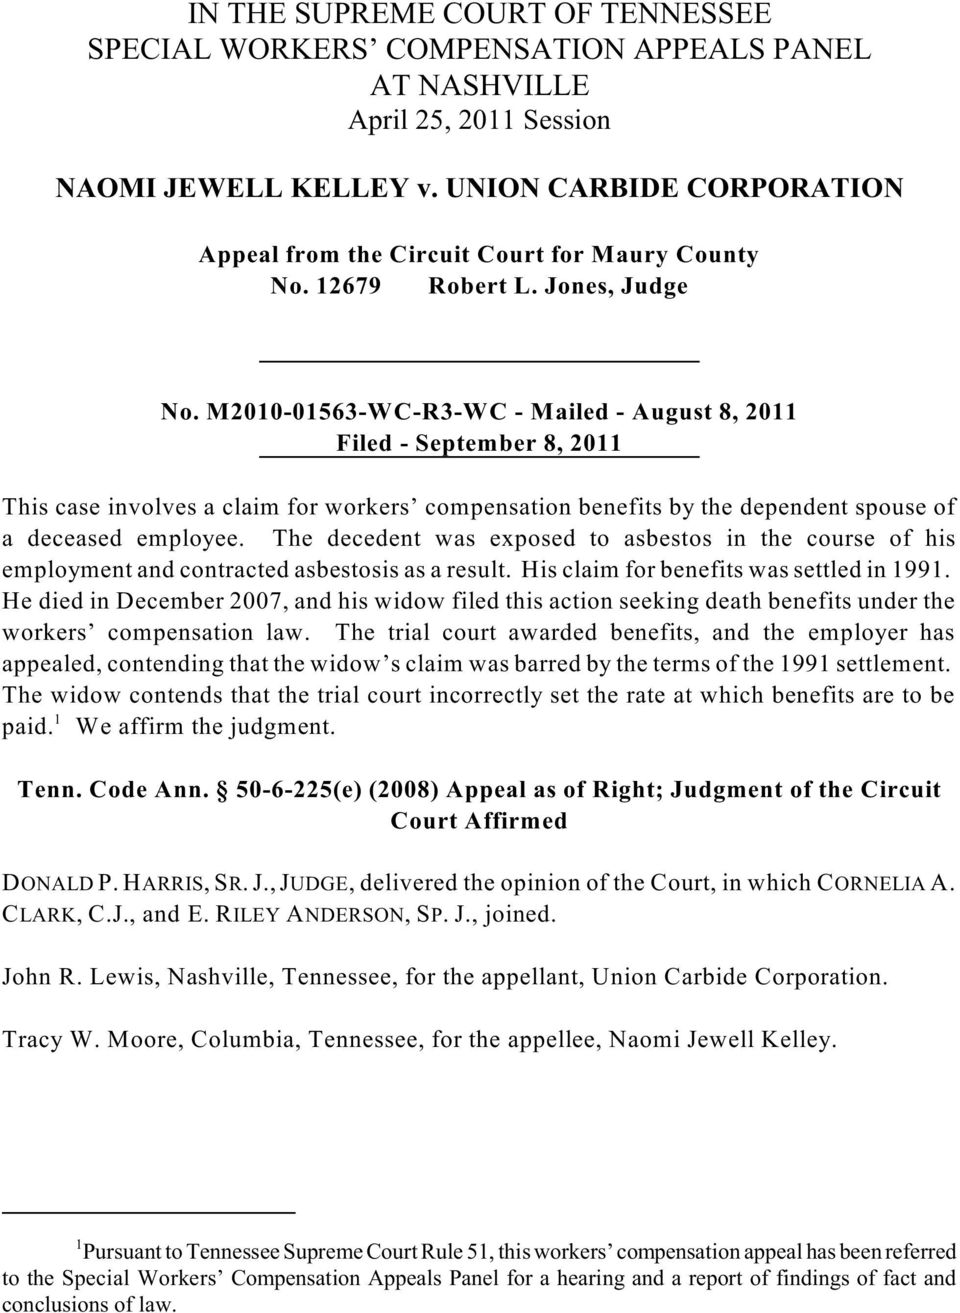 M2010-01563-WC-R3-WC - Mailed - August 8, 2011 Filed - September 8, 2011 This case involves a claim for workers compensation benefits by the dependent spouse of a deceased employee.